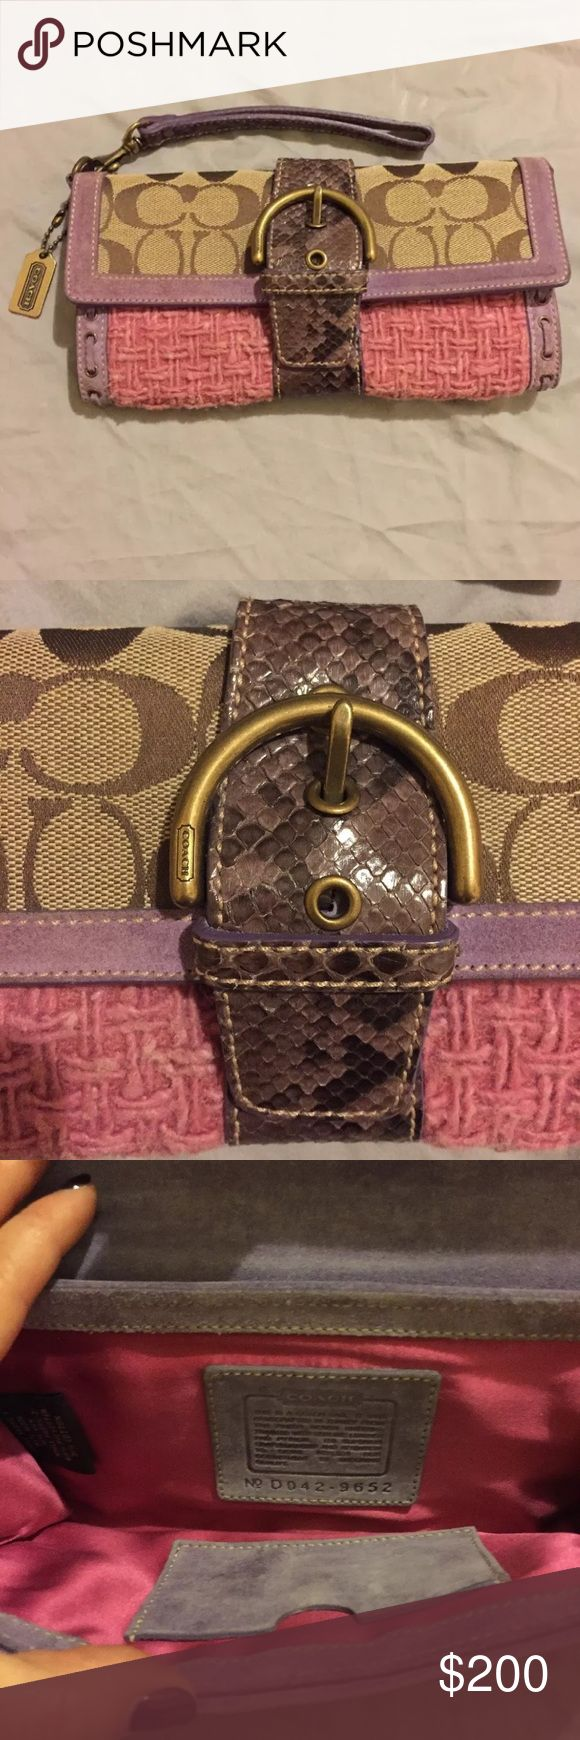 COACH WRISTLET / CLUTCH WITH SUEDE & PYHTON TRIM Gorgeous Coach wristlet: pink textured wool w/ signature fabric on the top flap. It has a buckle on the front & bow on the back. Purple suede trim & python trim down the center w/ python wrist loop. Inside, it has purple suede under the flap & pink satin lining w/ purple suede card holder.  The wool shows signs of wear. There are two spots: 1 on the inside of the suede flap and 1 on the wool to the left of the trim as shown in photo. Both are…